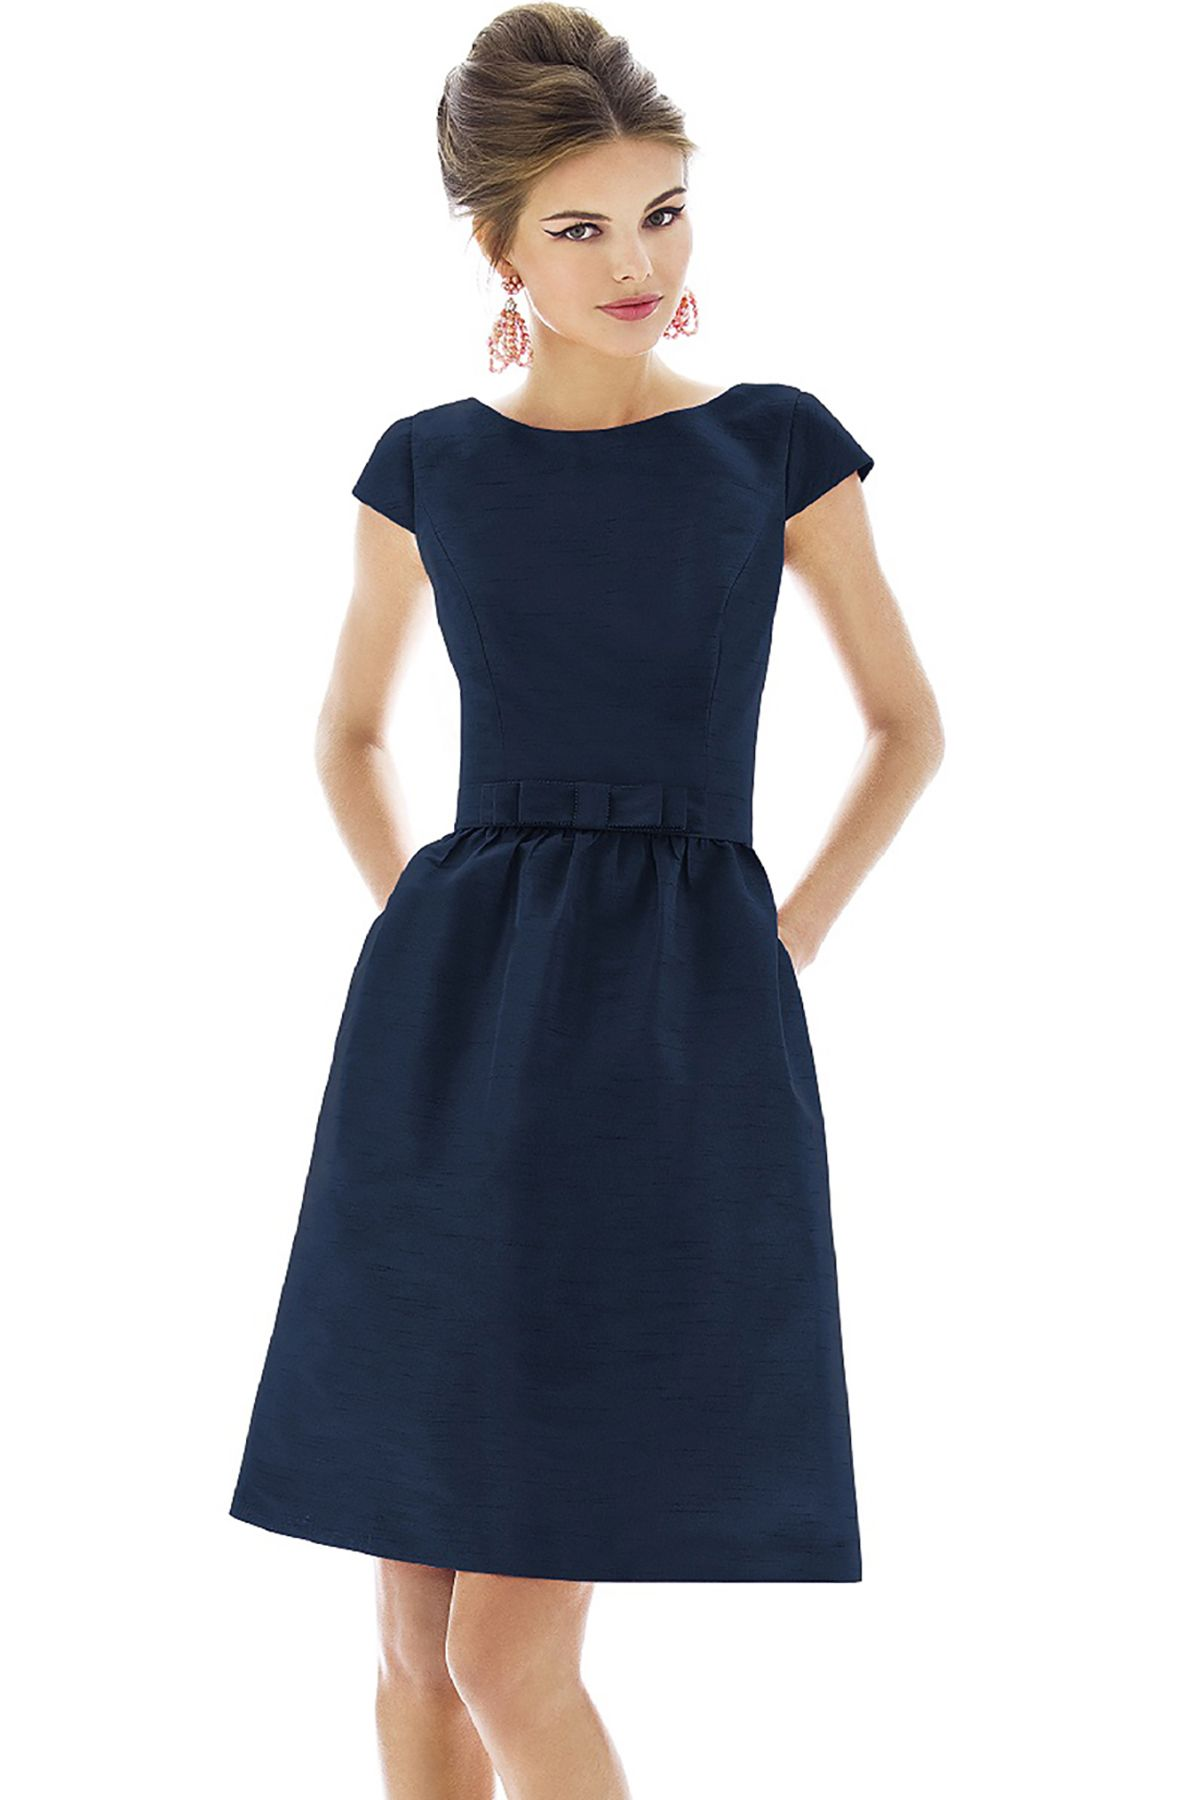 Alfred Sung D568 Quick Delivery Bridesmaid Dress in Navy blue